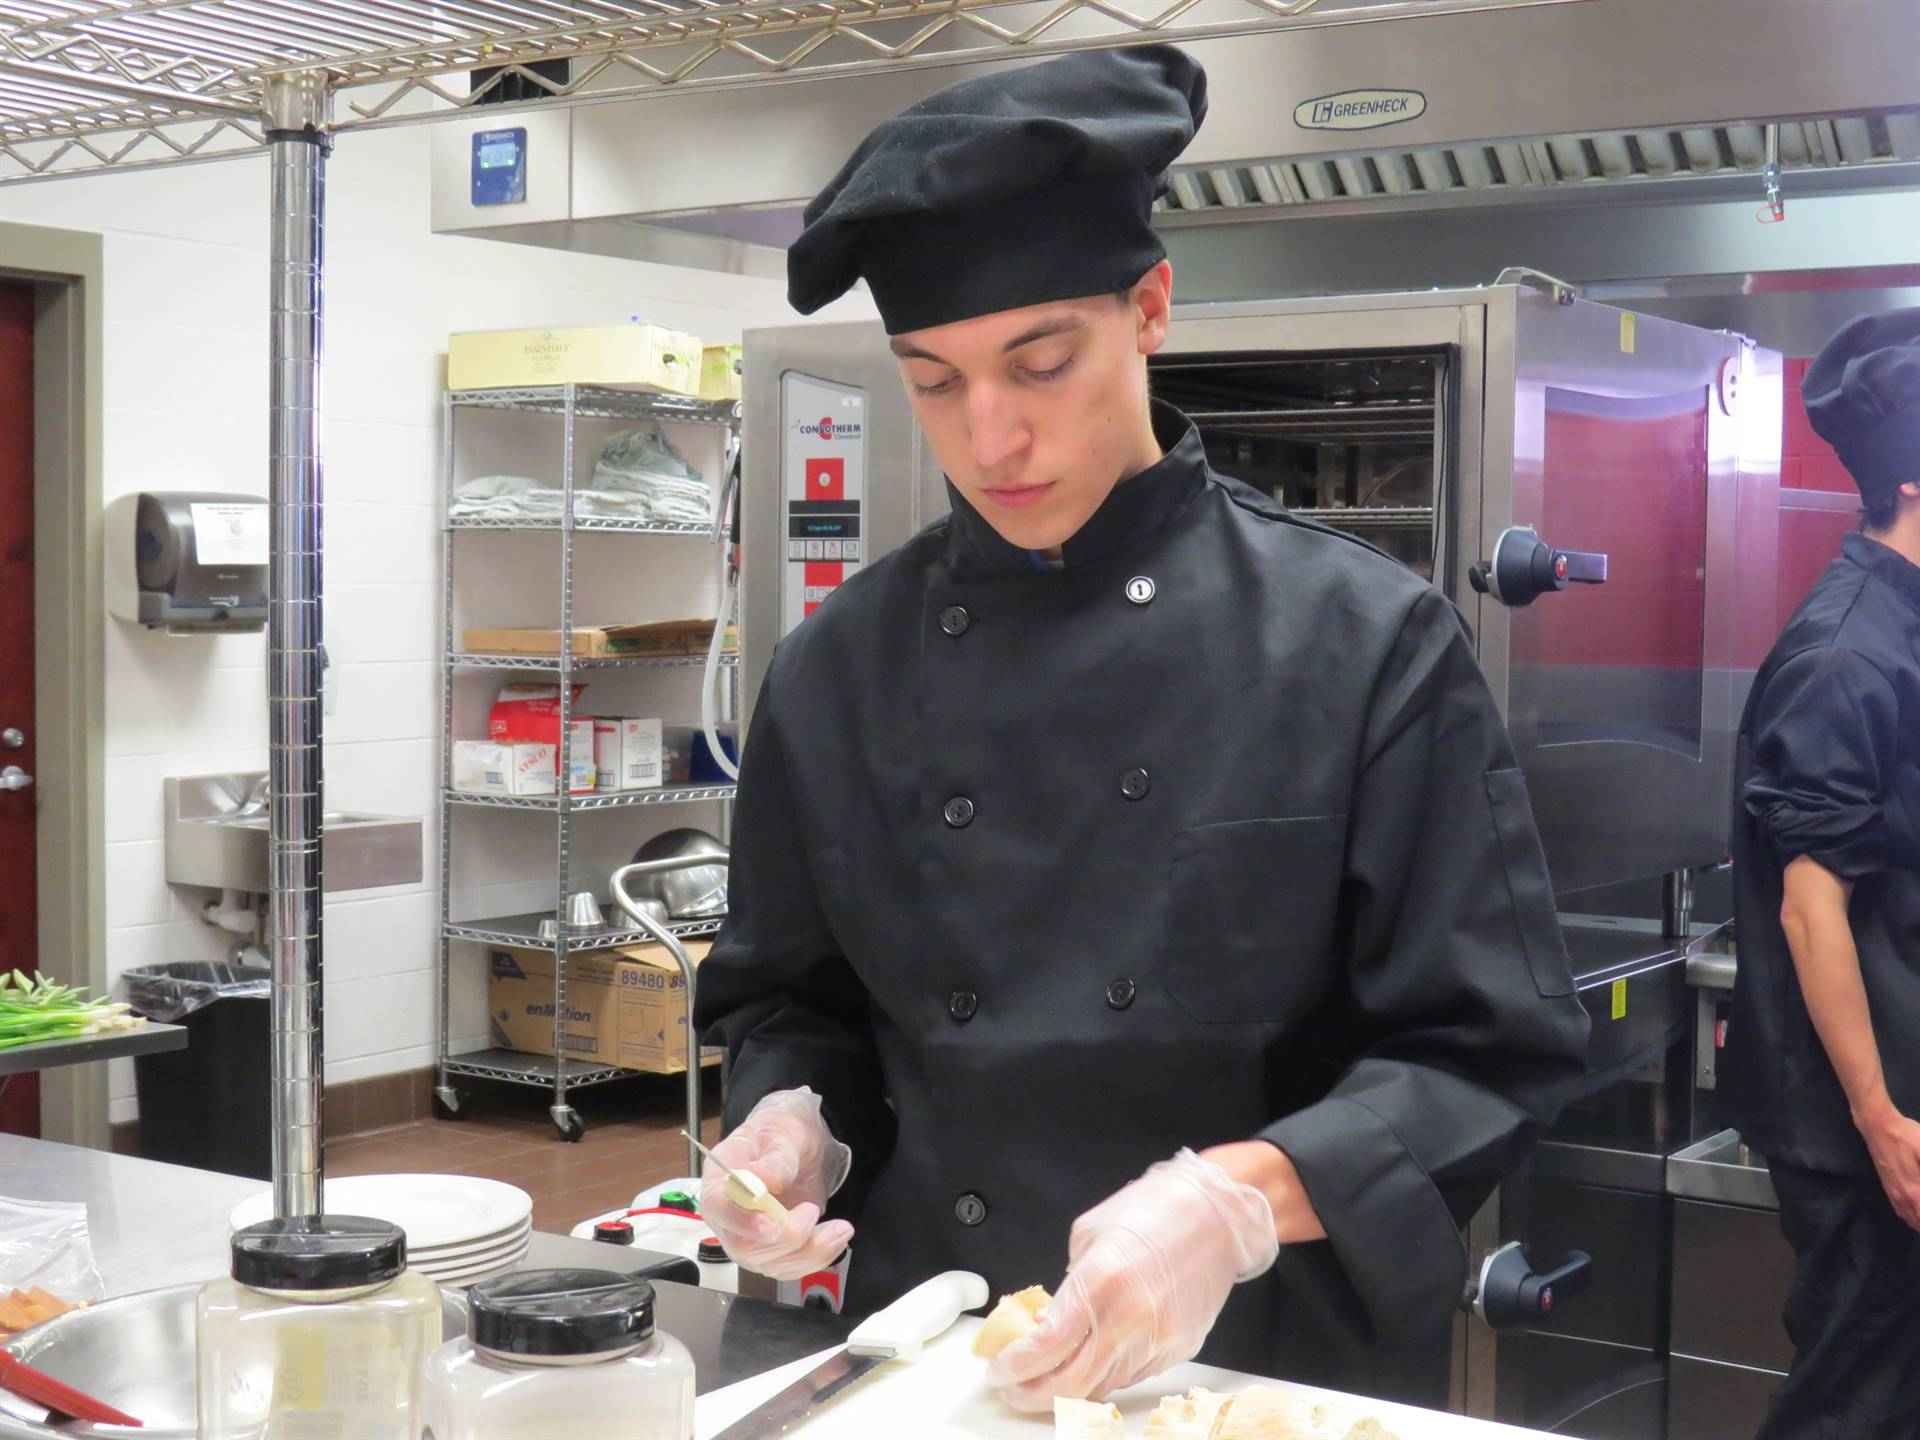 Male culinary arts student cutting food